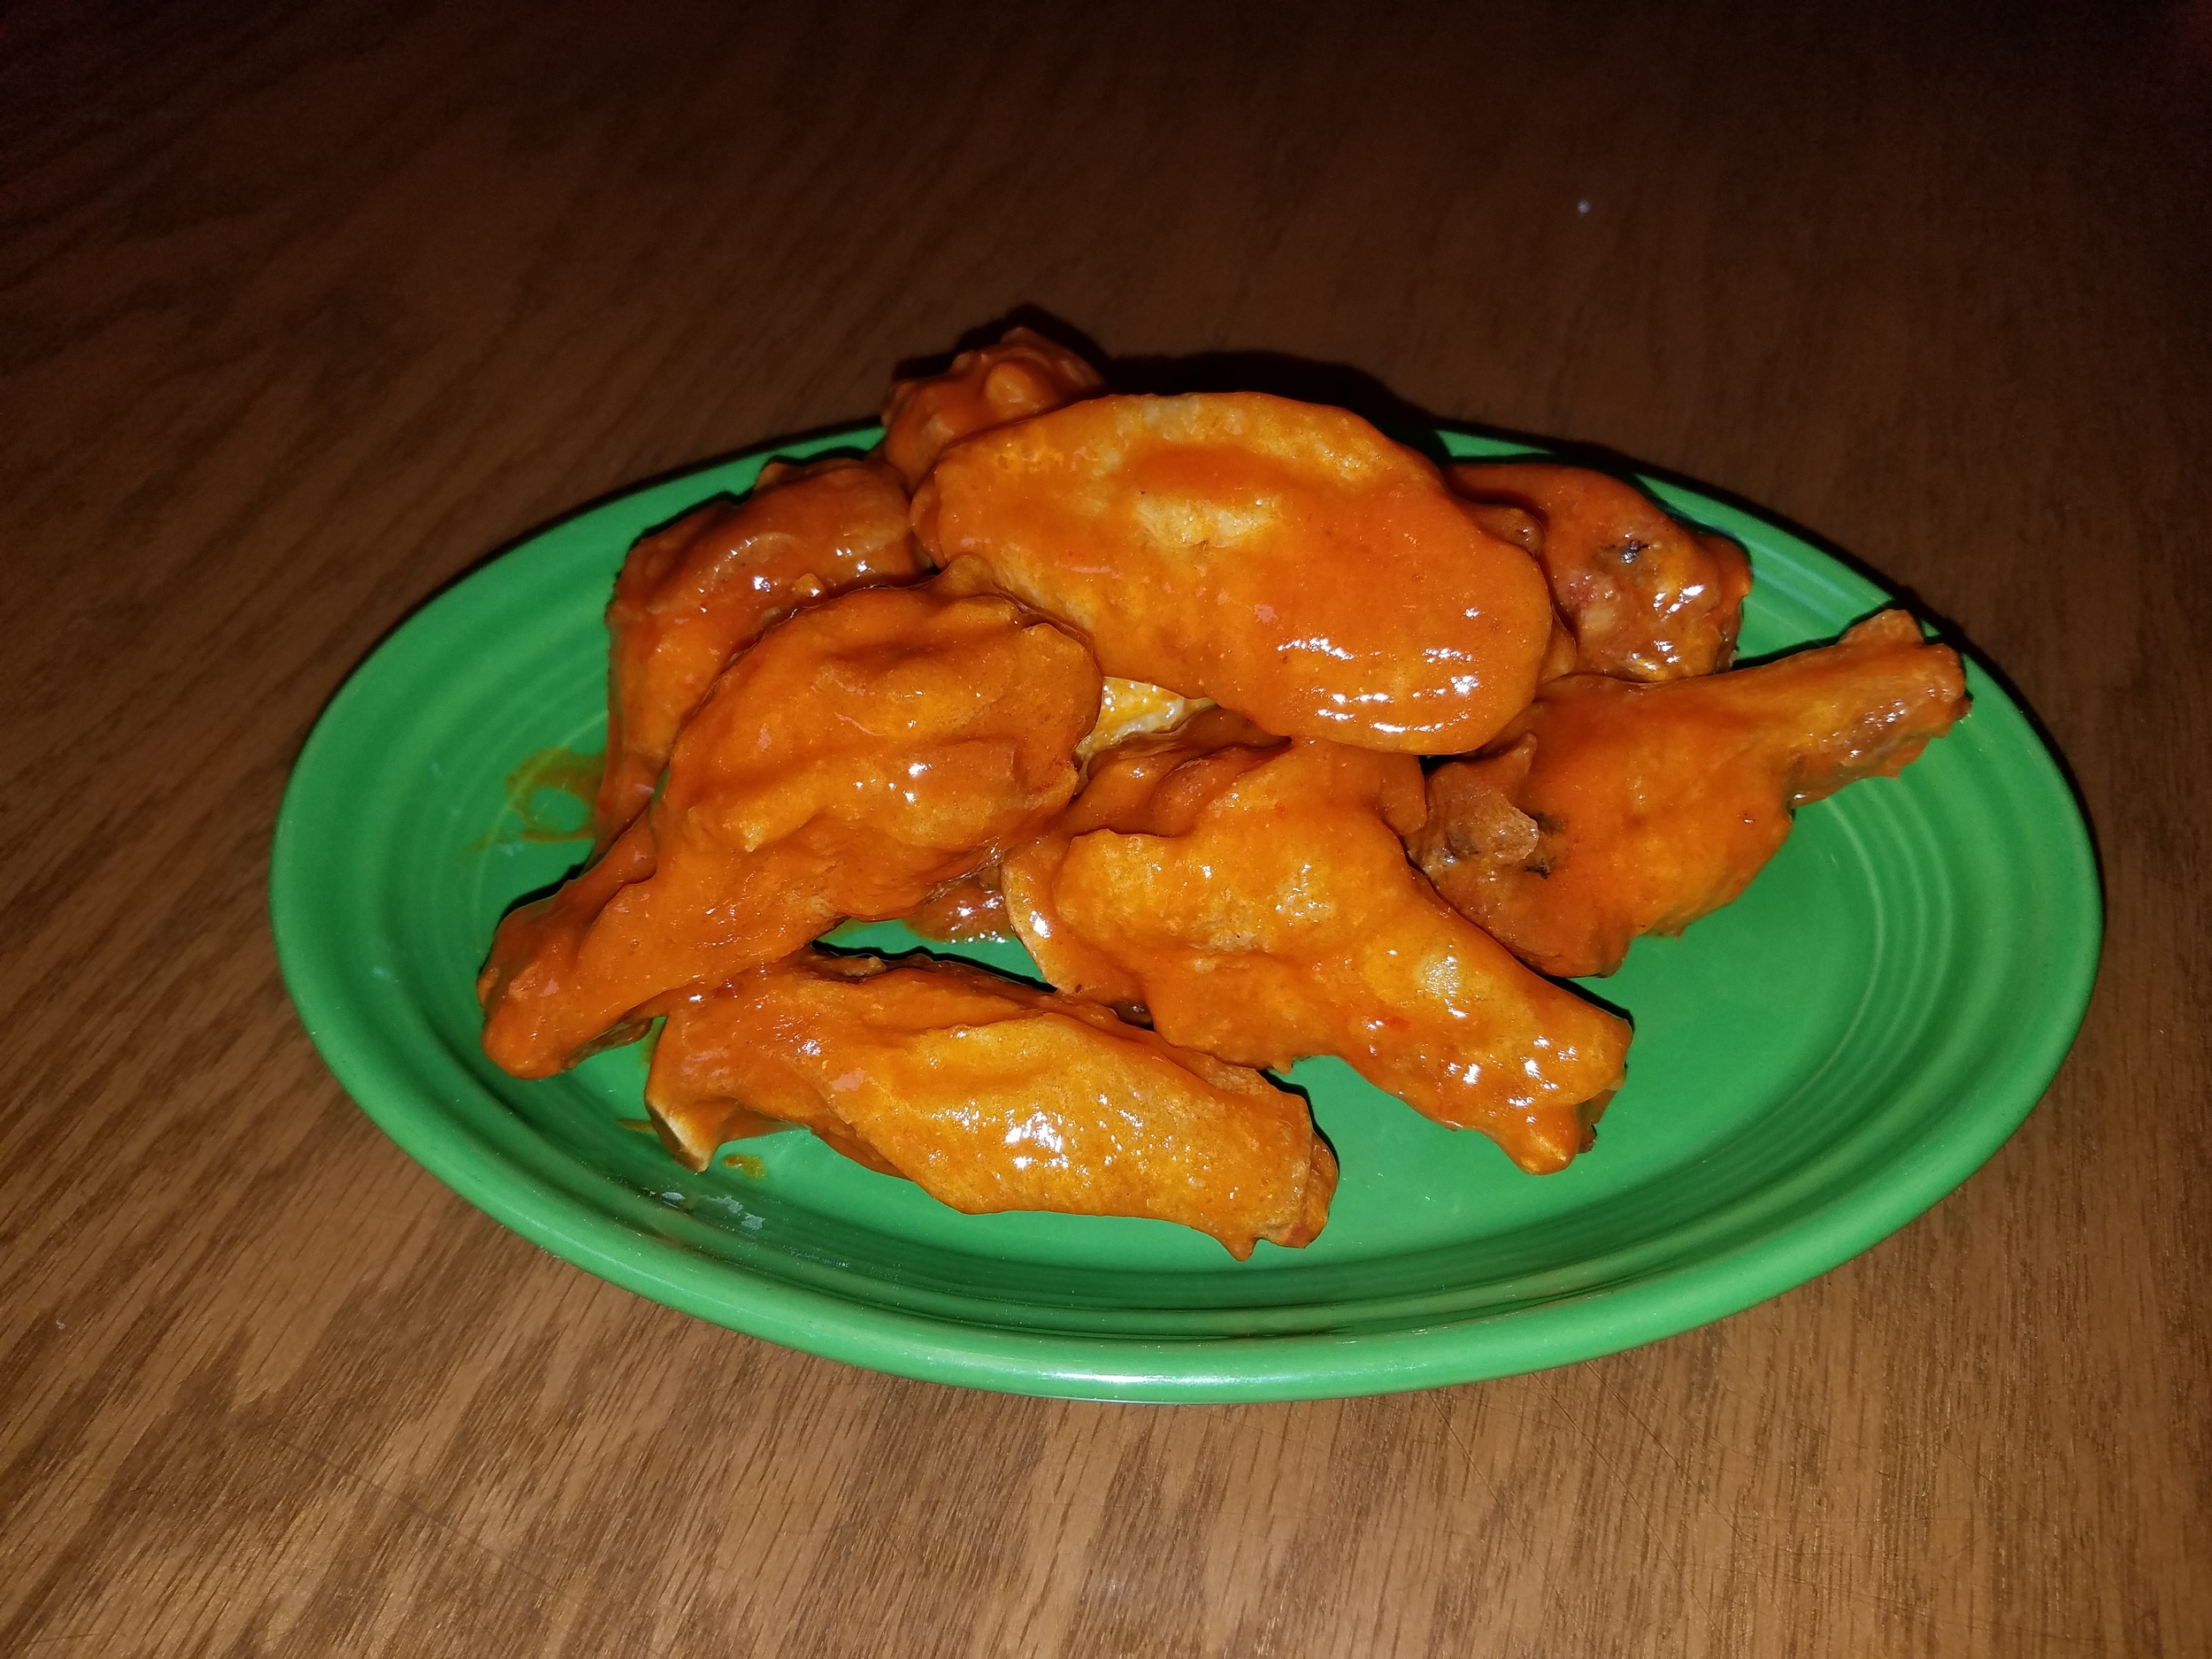 W  ednesday is wing night:   20cent Bone In Progressive Wing Special with Drink percahse and team trivia.   $1 for a side of Blue Cheese or Ranch.   4pm 20cent wings, 5pm 30cent wings, 6pm 40cent wings, and capping out at 50cent wings at 7pm going till 10pm. For drinks:        Happy Hour 4pm-9pm $3 Beers and $3 Cocktails    9 p.m.-close   $2 Tap Beers. (miller lite, PBR, and Premium)   $2 Rail Drinks   $18 Fish Bowls